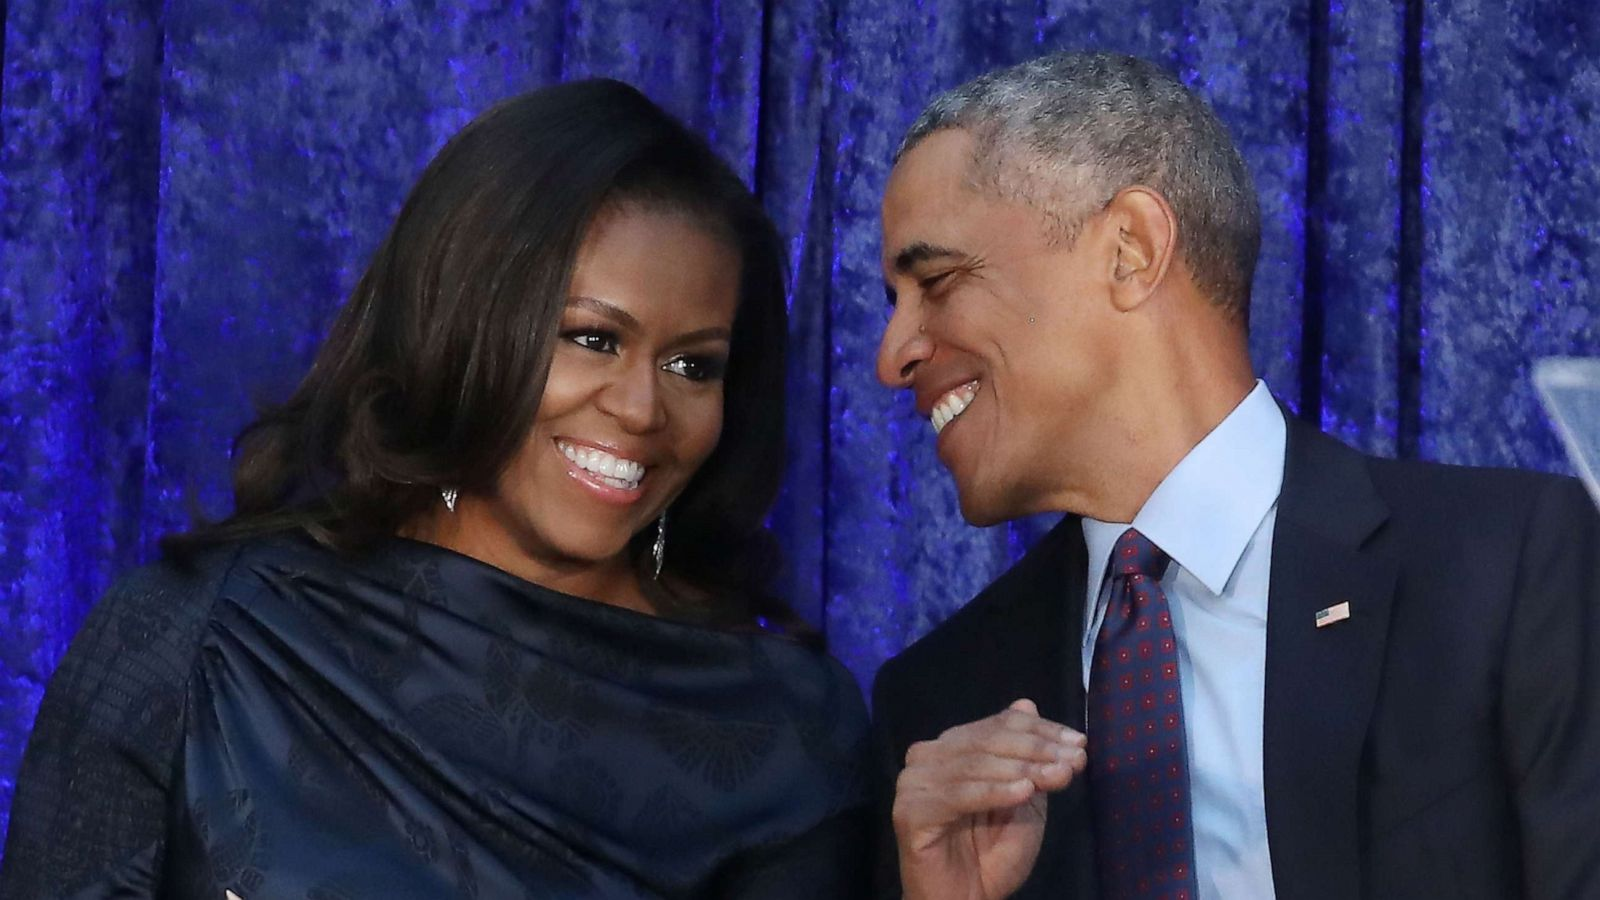 Michelle Obama Gets Sweet Happy Birthday Message From Barack Obama Abc News,Rudolph The Red Nosed Reindeer 1964 Vhs